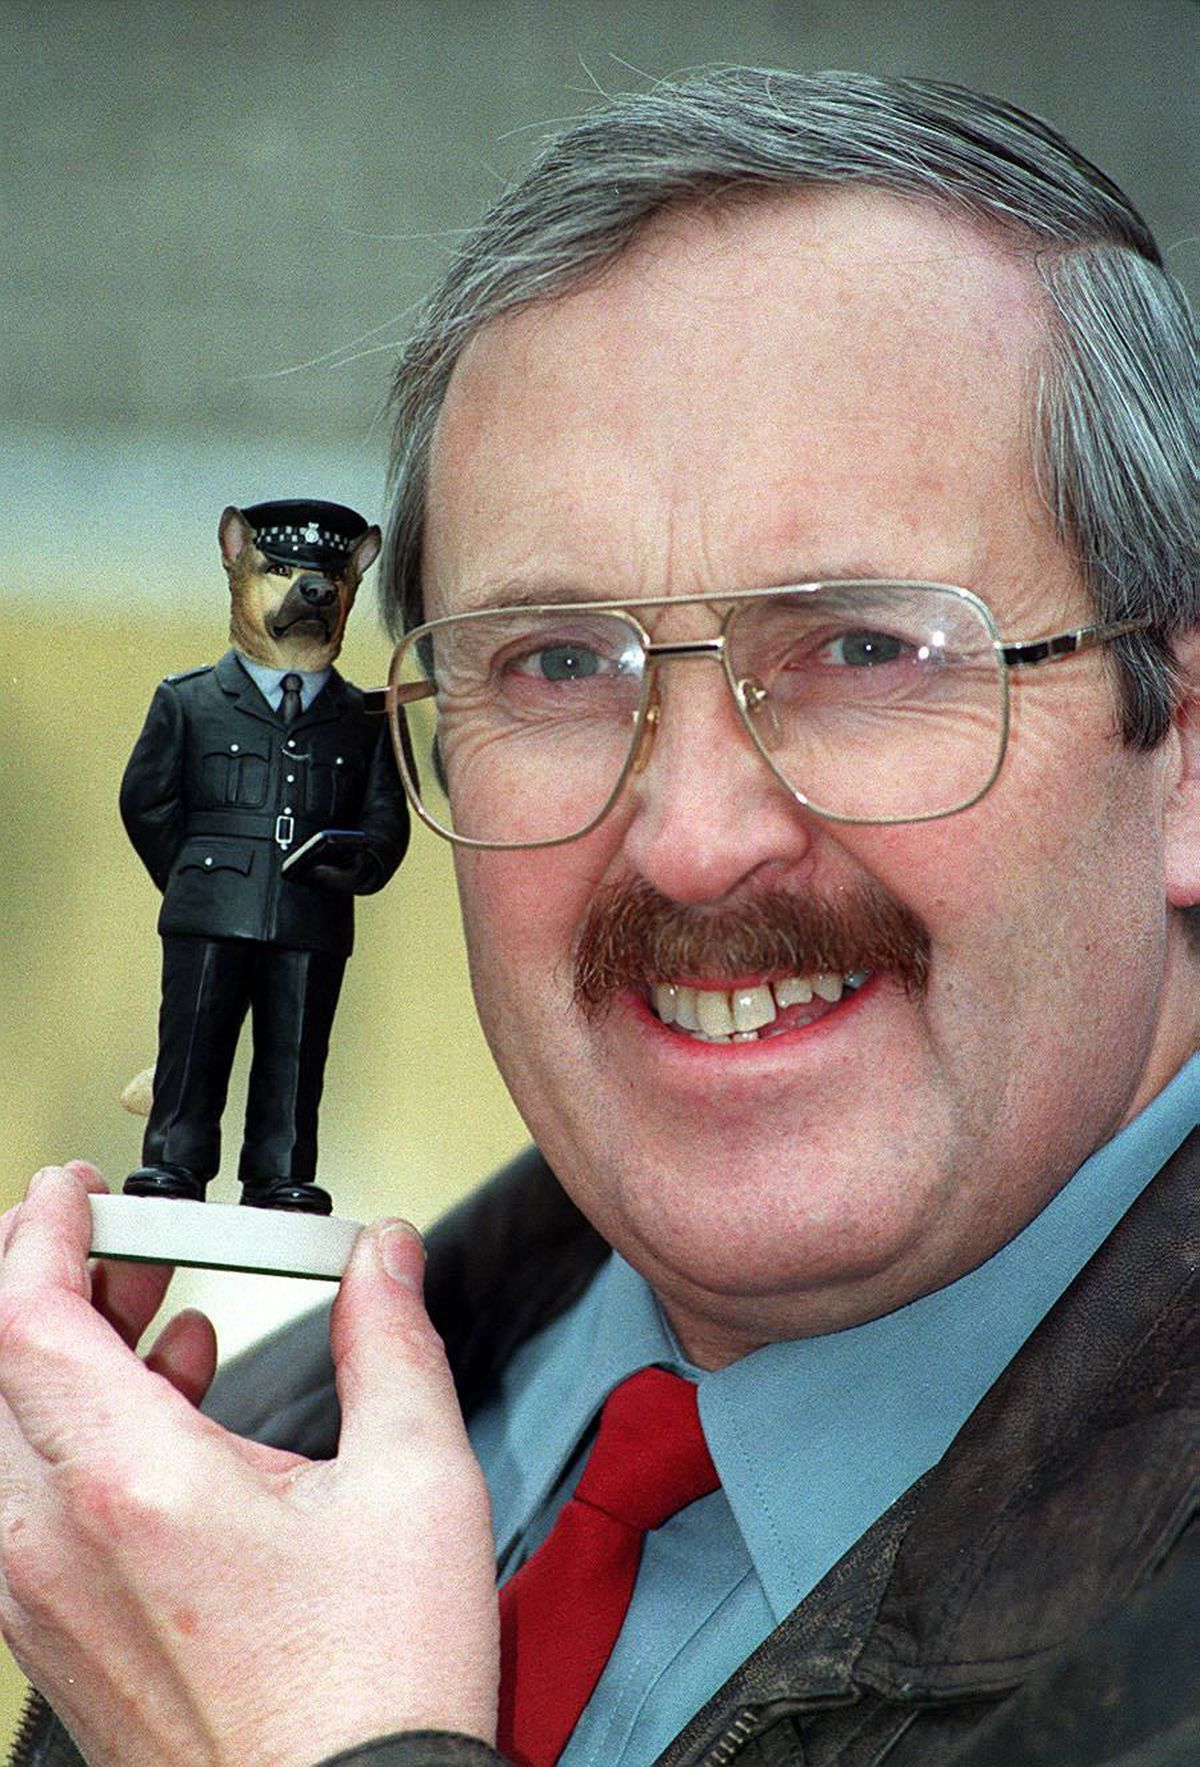 Ken Young with the model of his police dog, Karl